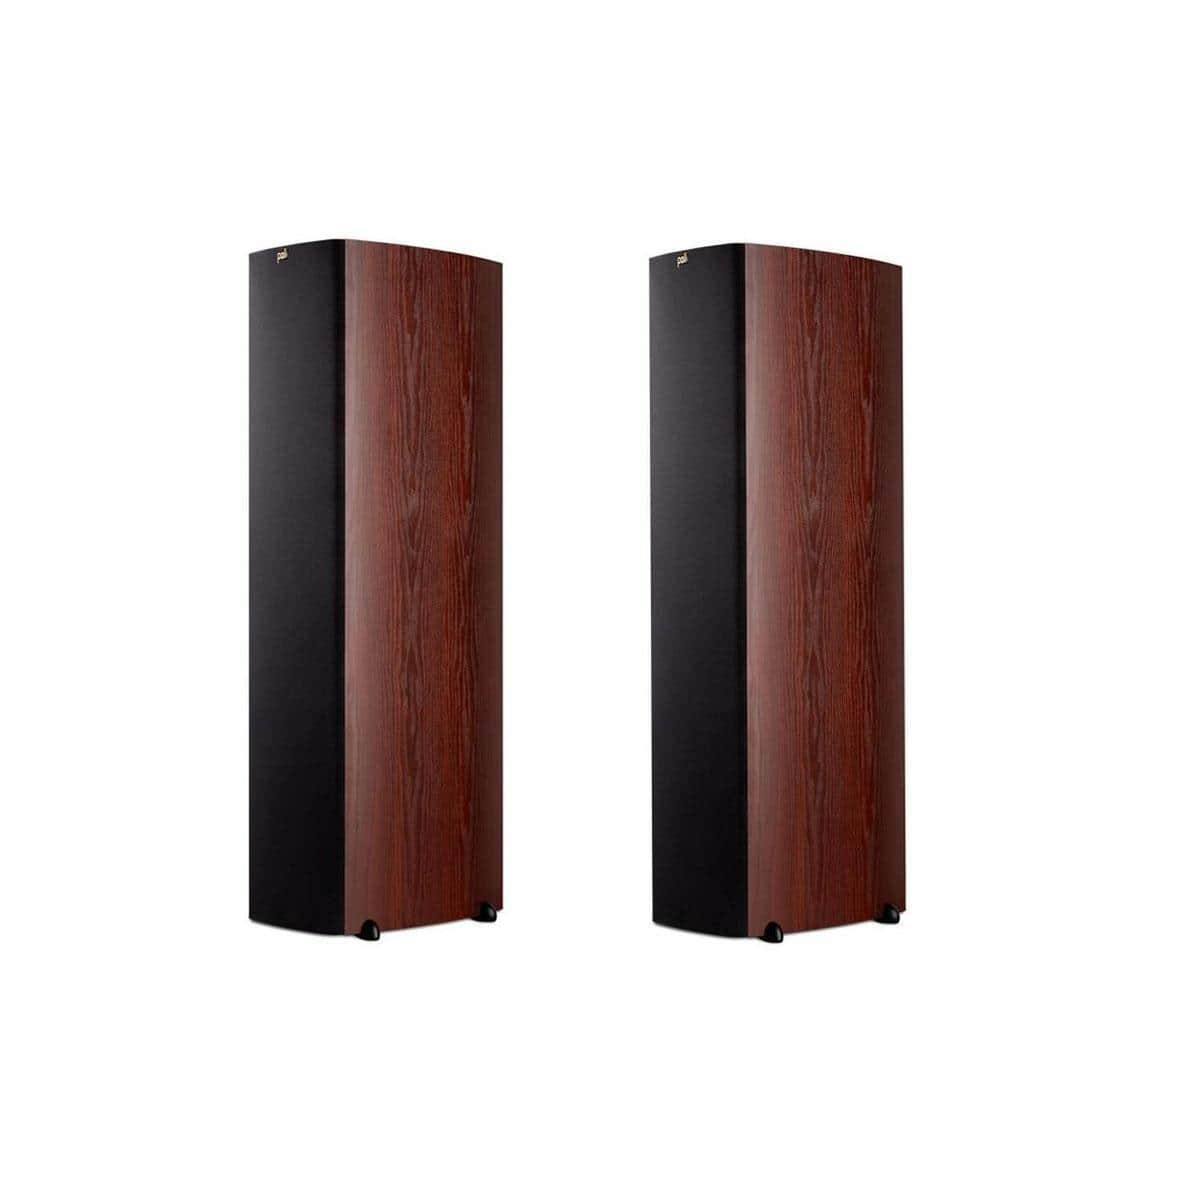 Polk Audio Speakers: (pair) of TSx550T Floorstanding Speakers $499 or (pair) TSx550T + TSx250C Center Speaker $630 + free shipping